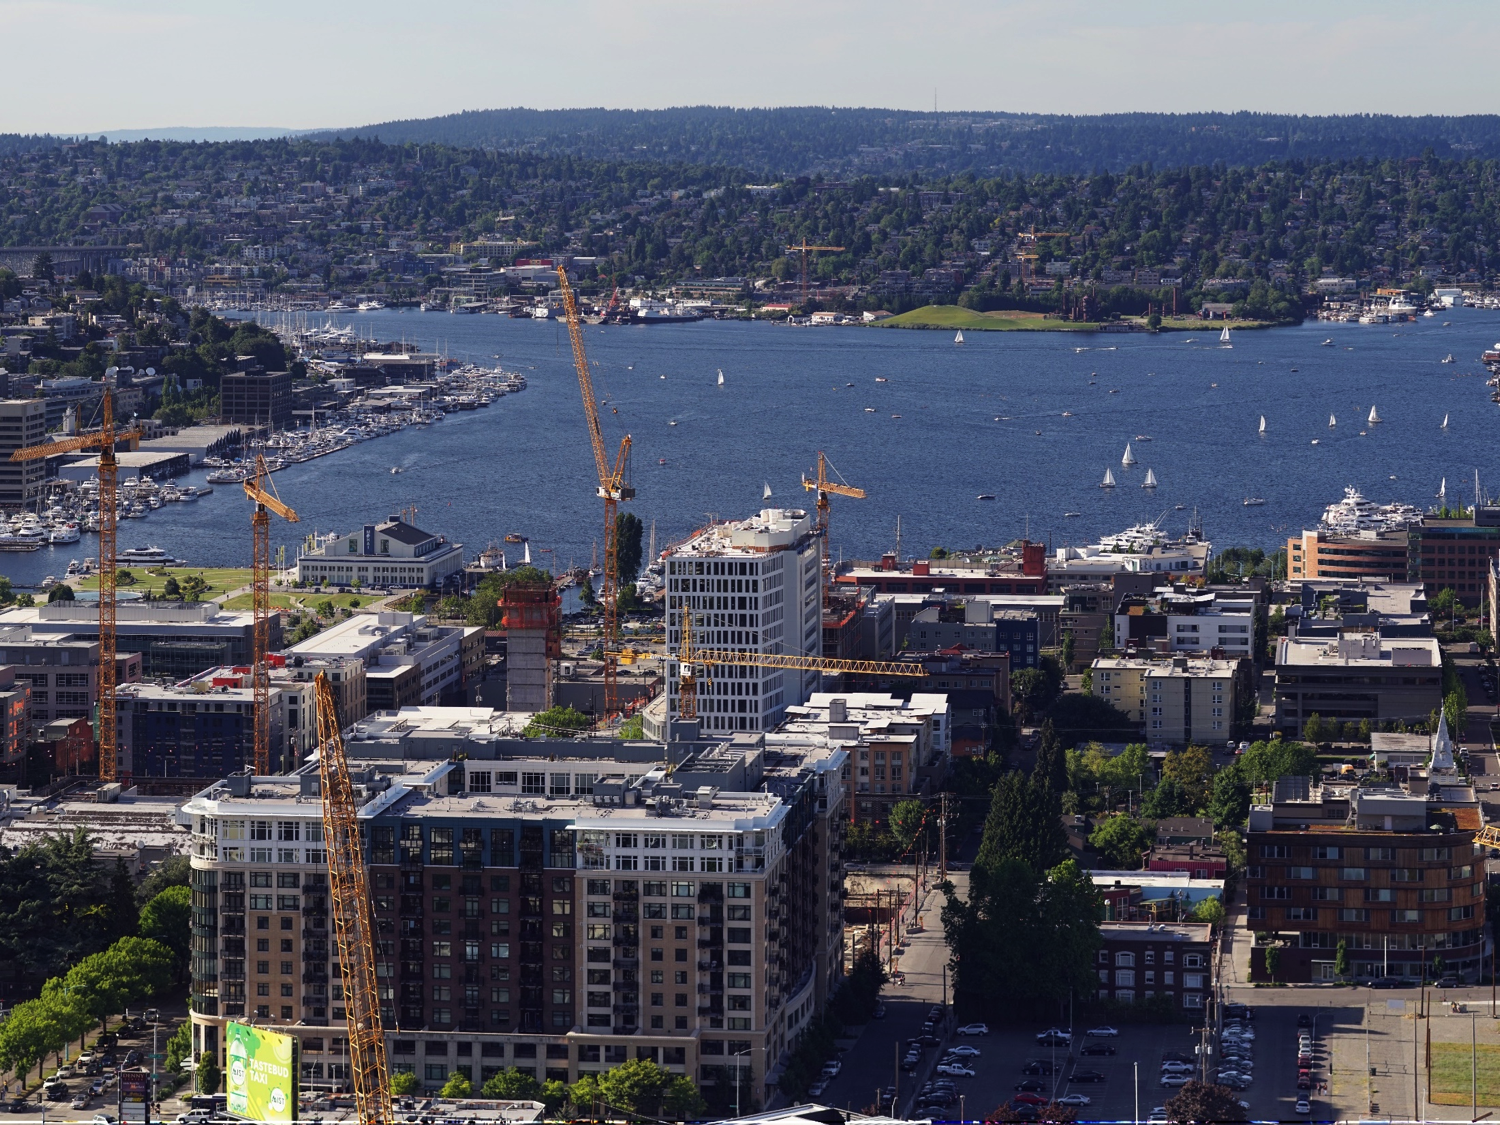 Panorama of South Lake Union by Dllu via Wikimedia Commons via Flickr (CC BY-SA 4.0)